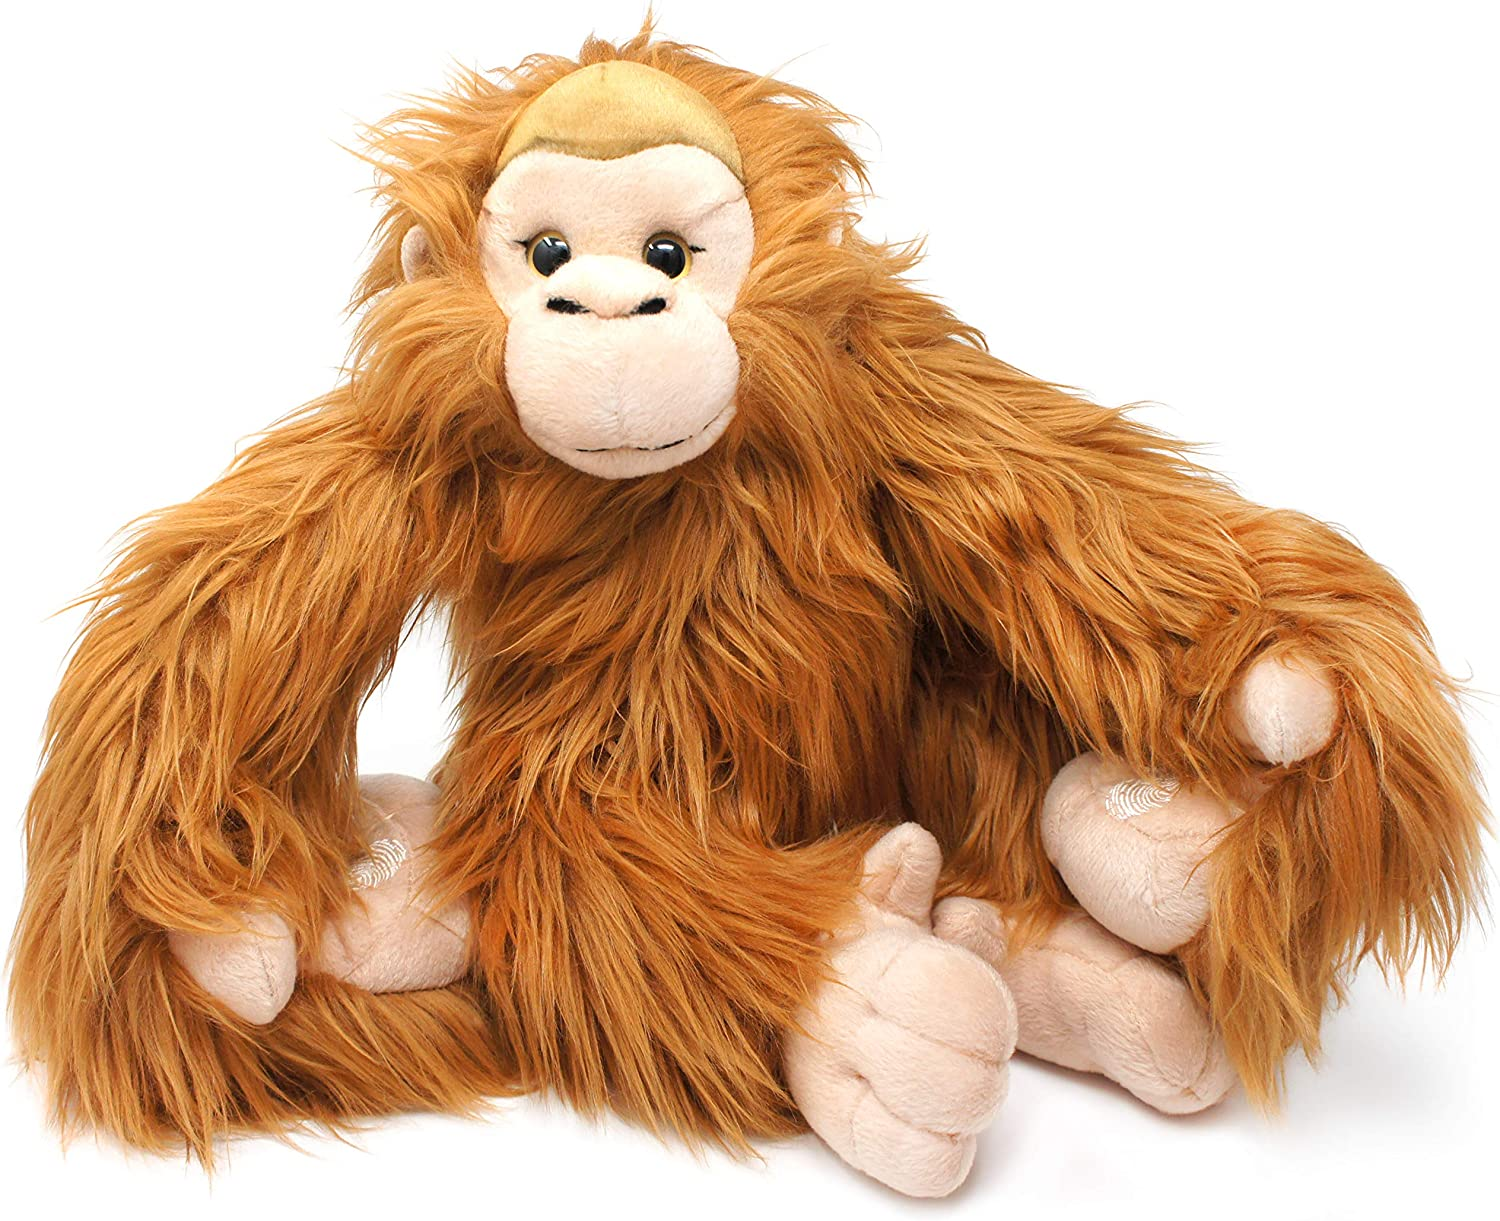 Ornaldo The Orangutan Monkey - 19 Inch (with Hanging Arms Outstretched) Stuffed Animal Plush Chimpanzee - by Tiger Tale Toys